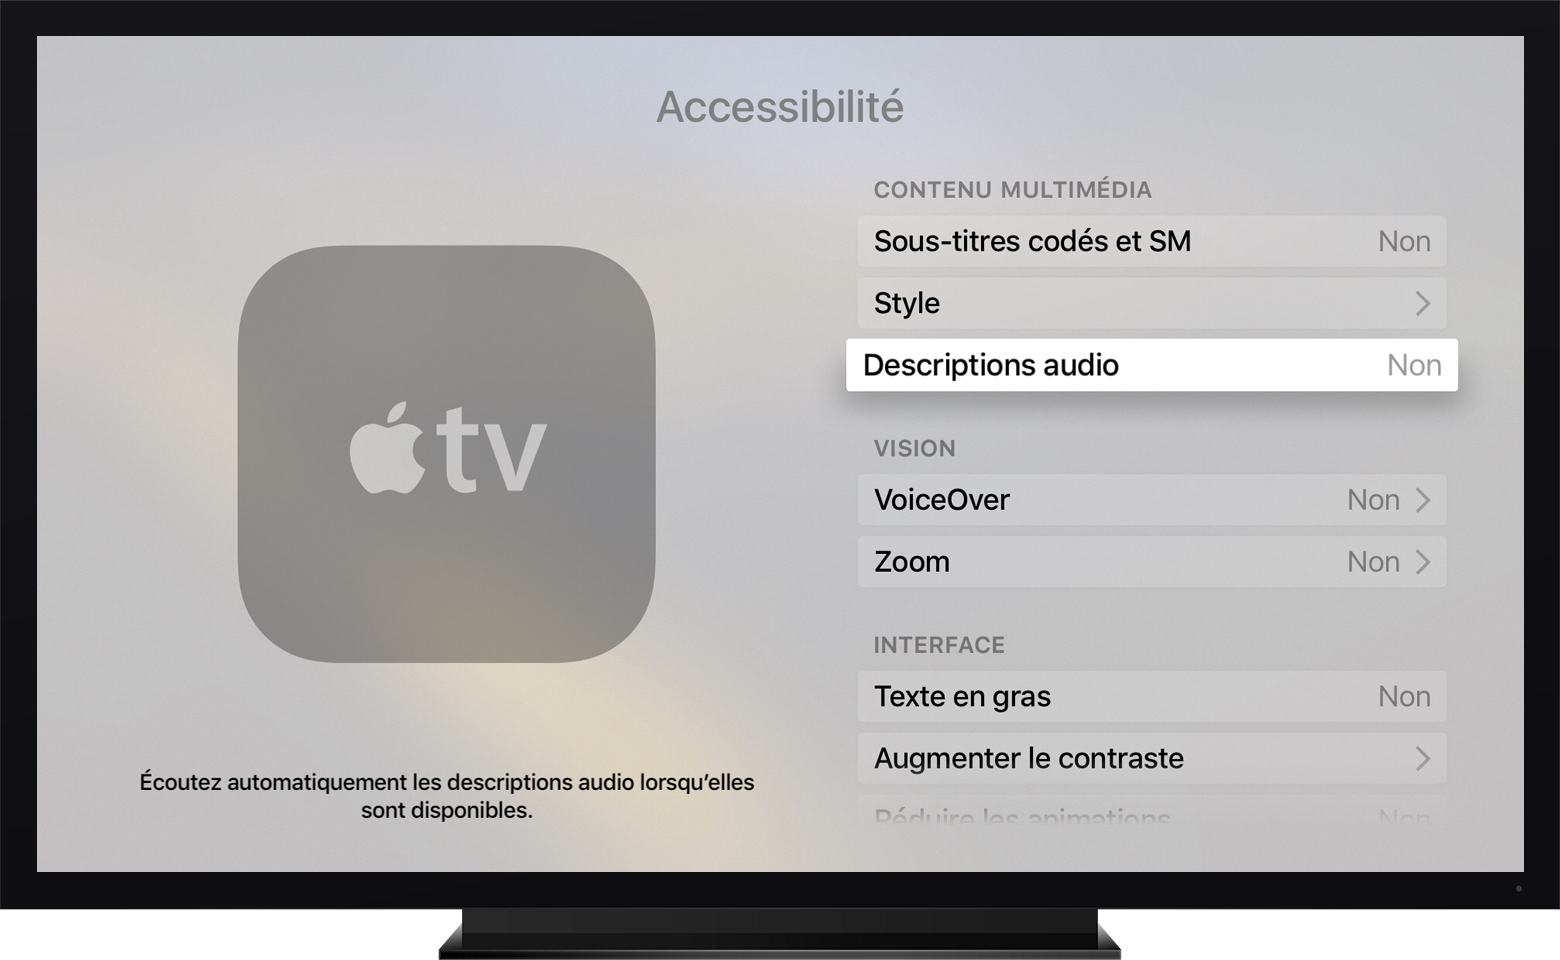 tvOS affichant Descriptions audio en surbrillance dans le menu Accessibilité.